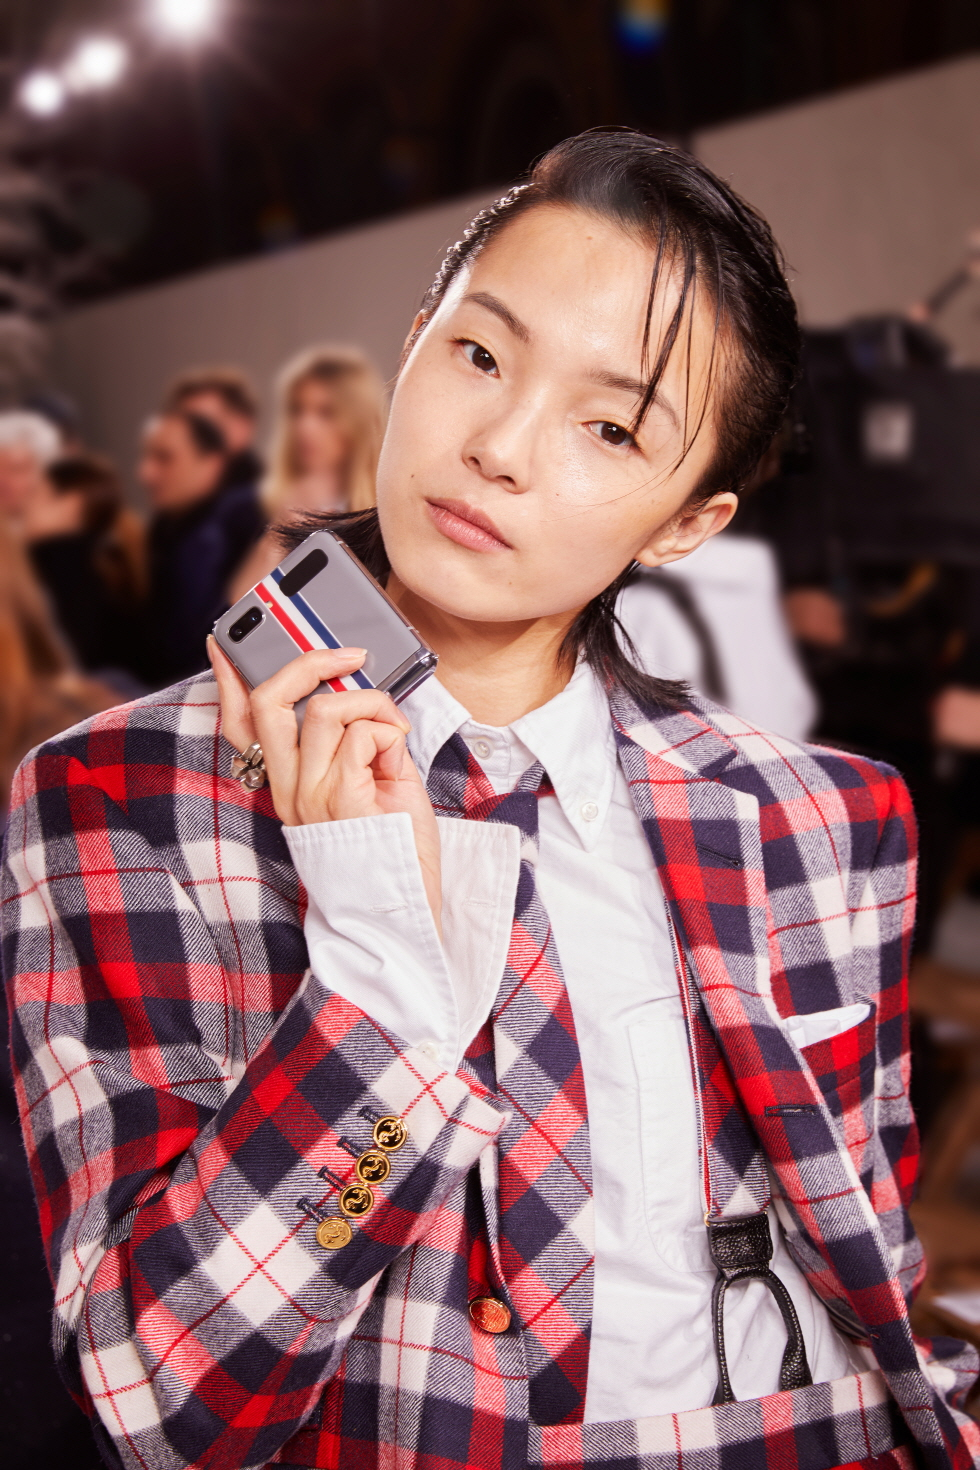 Model Xiao Wen Ju with Galaxy Z Flip Thom Browne Edition at Paris Fashion Week.